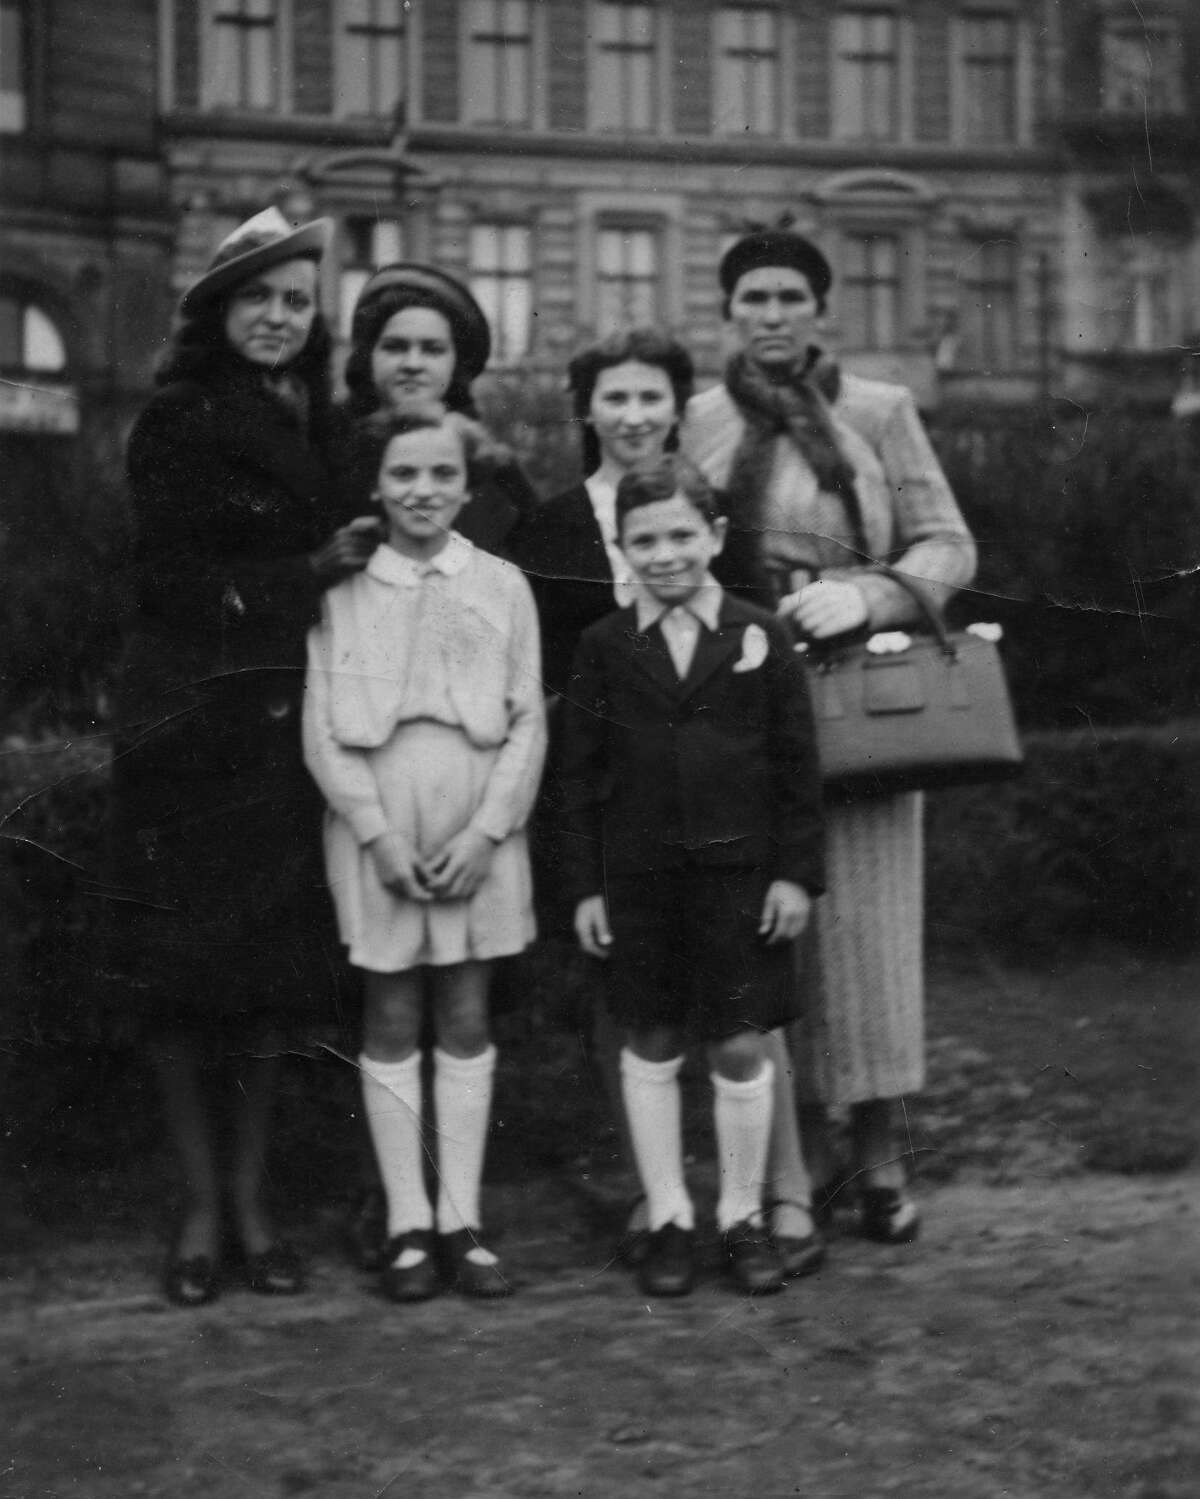 The Grajonca Family, circa 1938, Gelatin silver print, frame: 11 x 9 in. Collection of David and Alex Graham. Bill Graham and the Rock & Roll Revolution is organized and circulated by the Skirball Cultural Center, Los Angeles, California. On view March 17-July 5, 2016 at The Contemporary Jewish Museum, San Francisco.